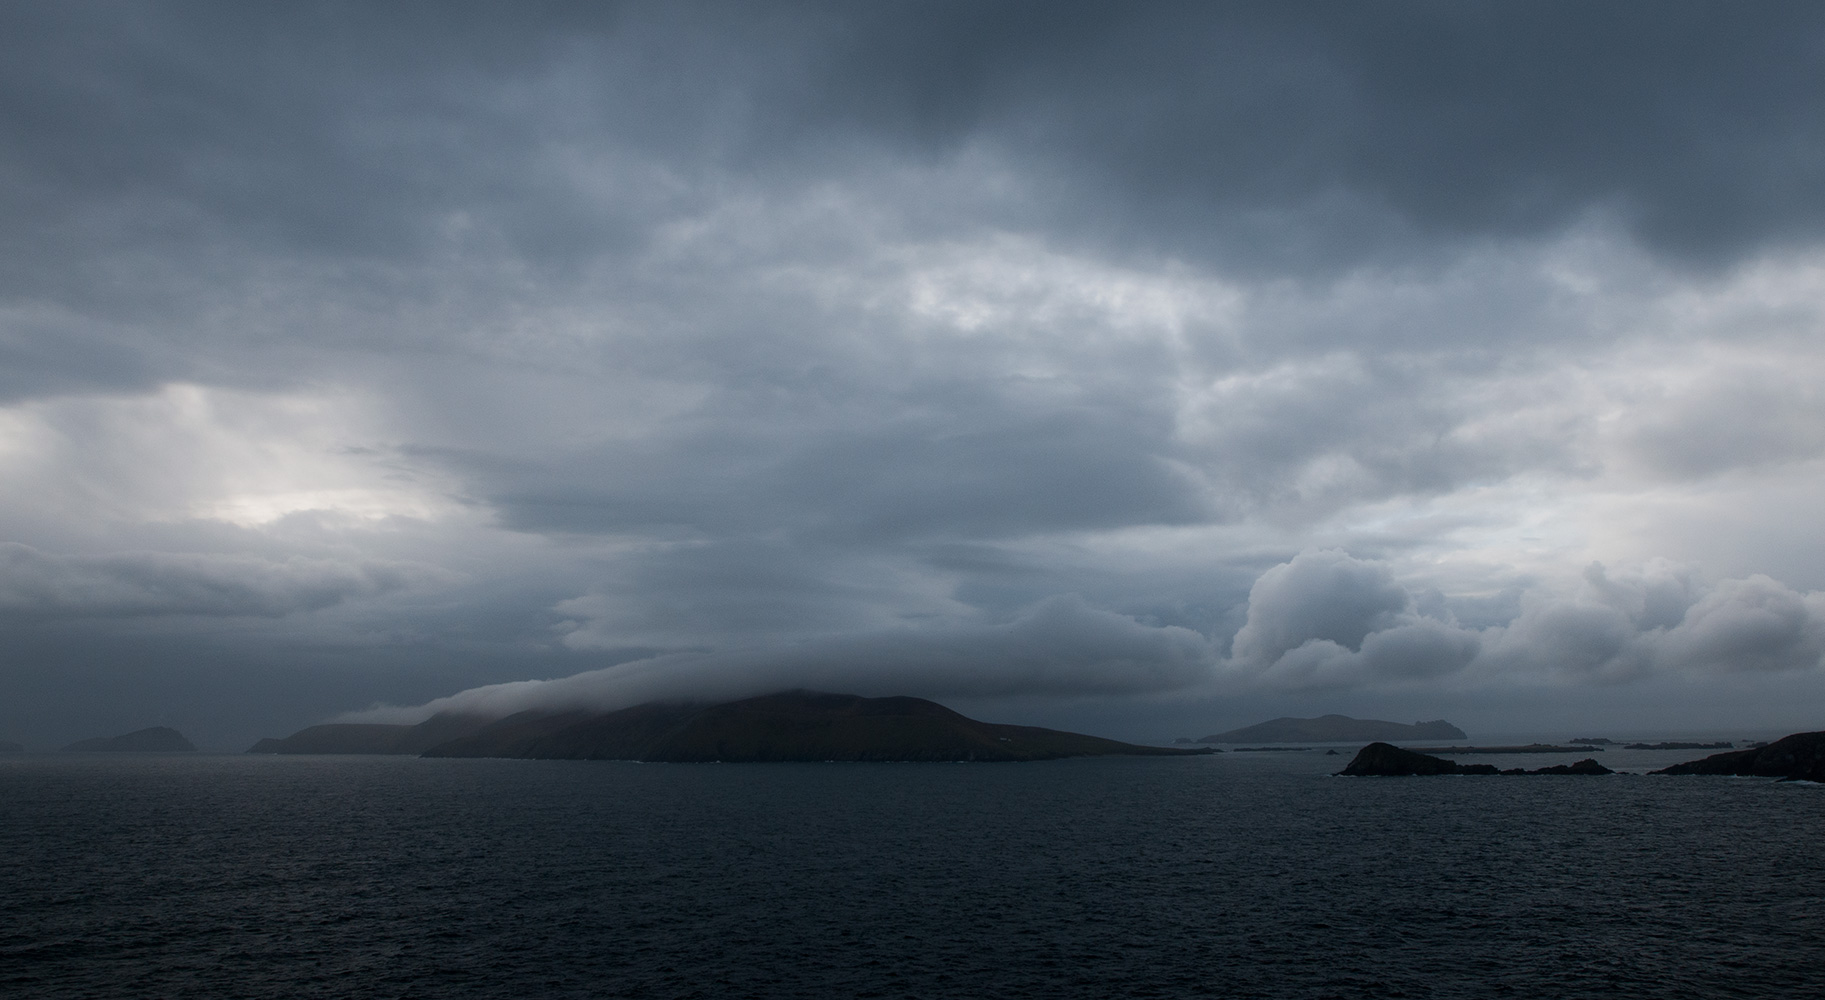 From Slea Head, Dingle, County Kerry, Republic of Ireland